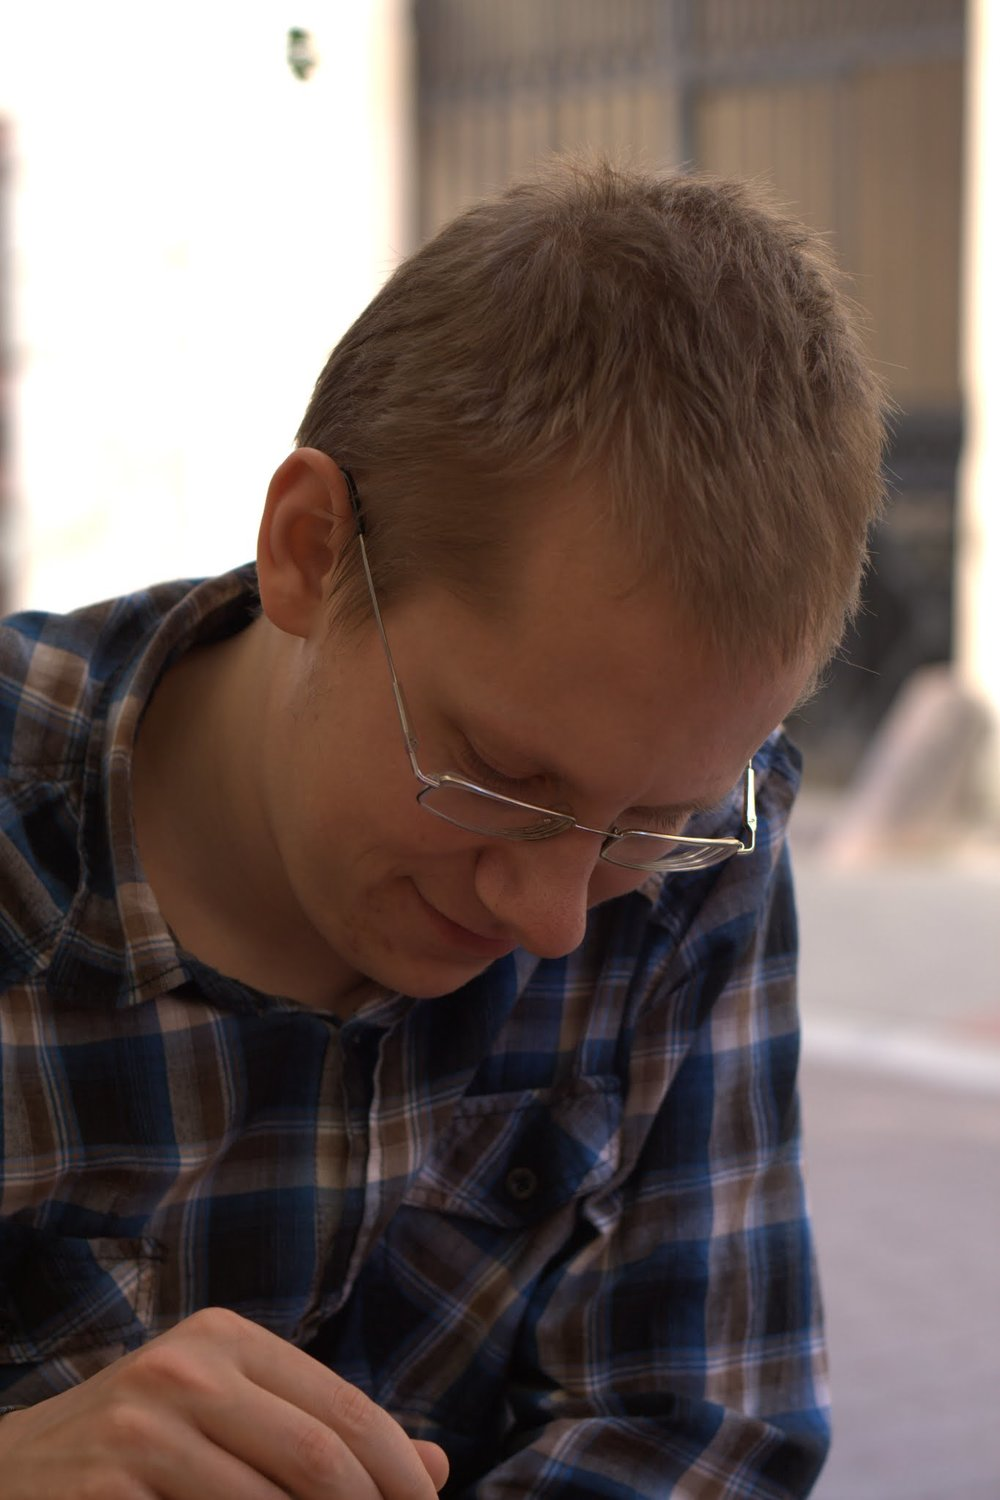 Uku Tooming is a Researcher in Theoretical Philosophy at the University of Tartu and a Fellow in Philosophy at Harvard University. His main research interests are in philosophy of mind, epistemology and aesthetics.